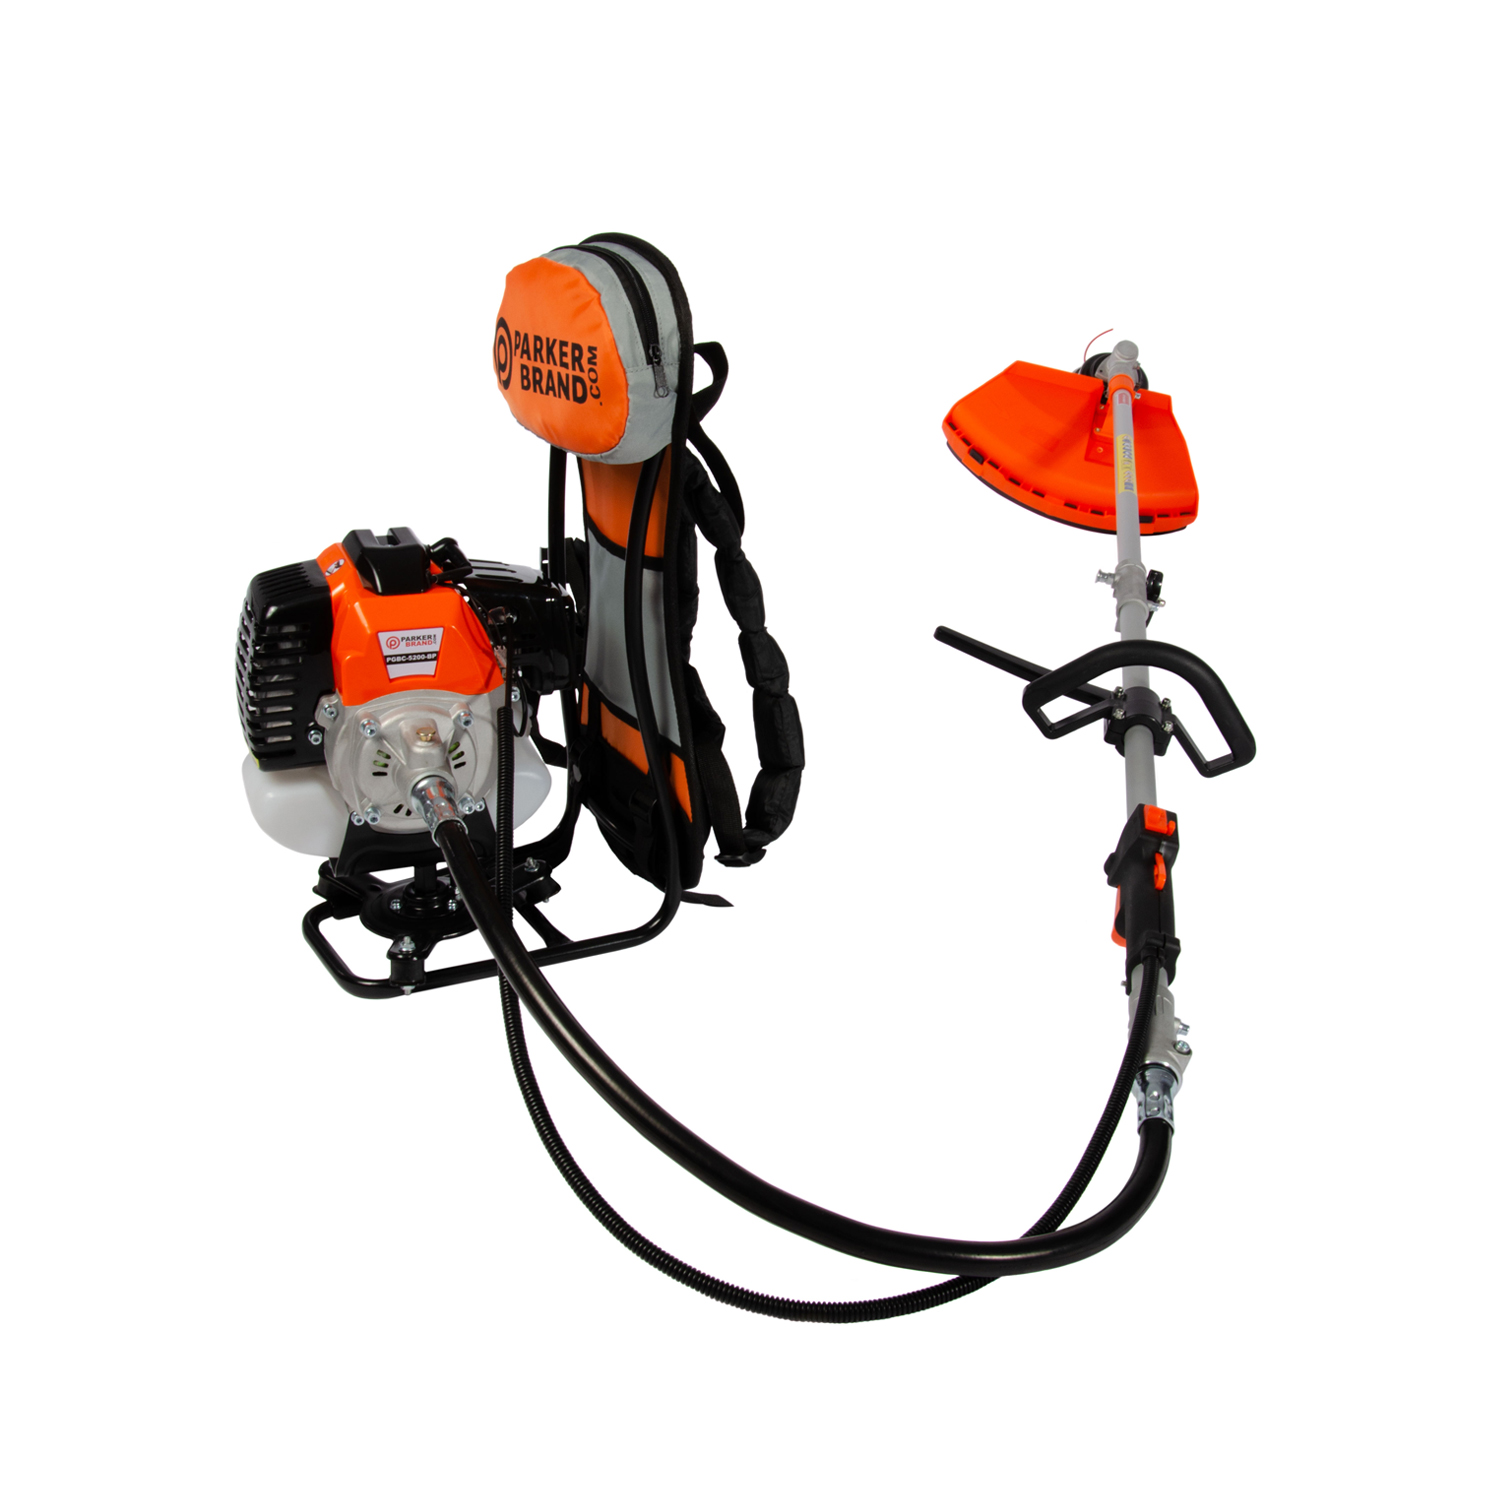 Back the Back Pack Brushcutter; it's a Winner!